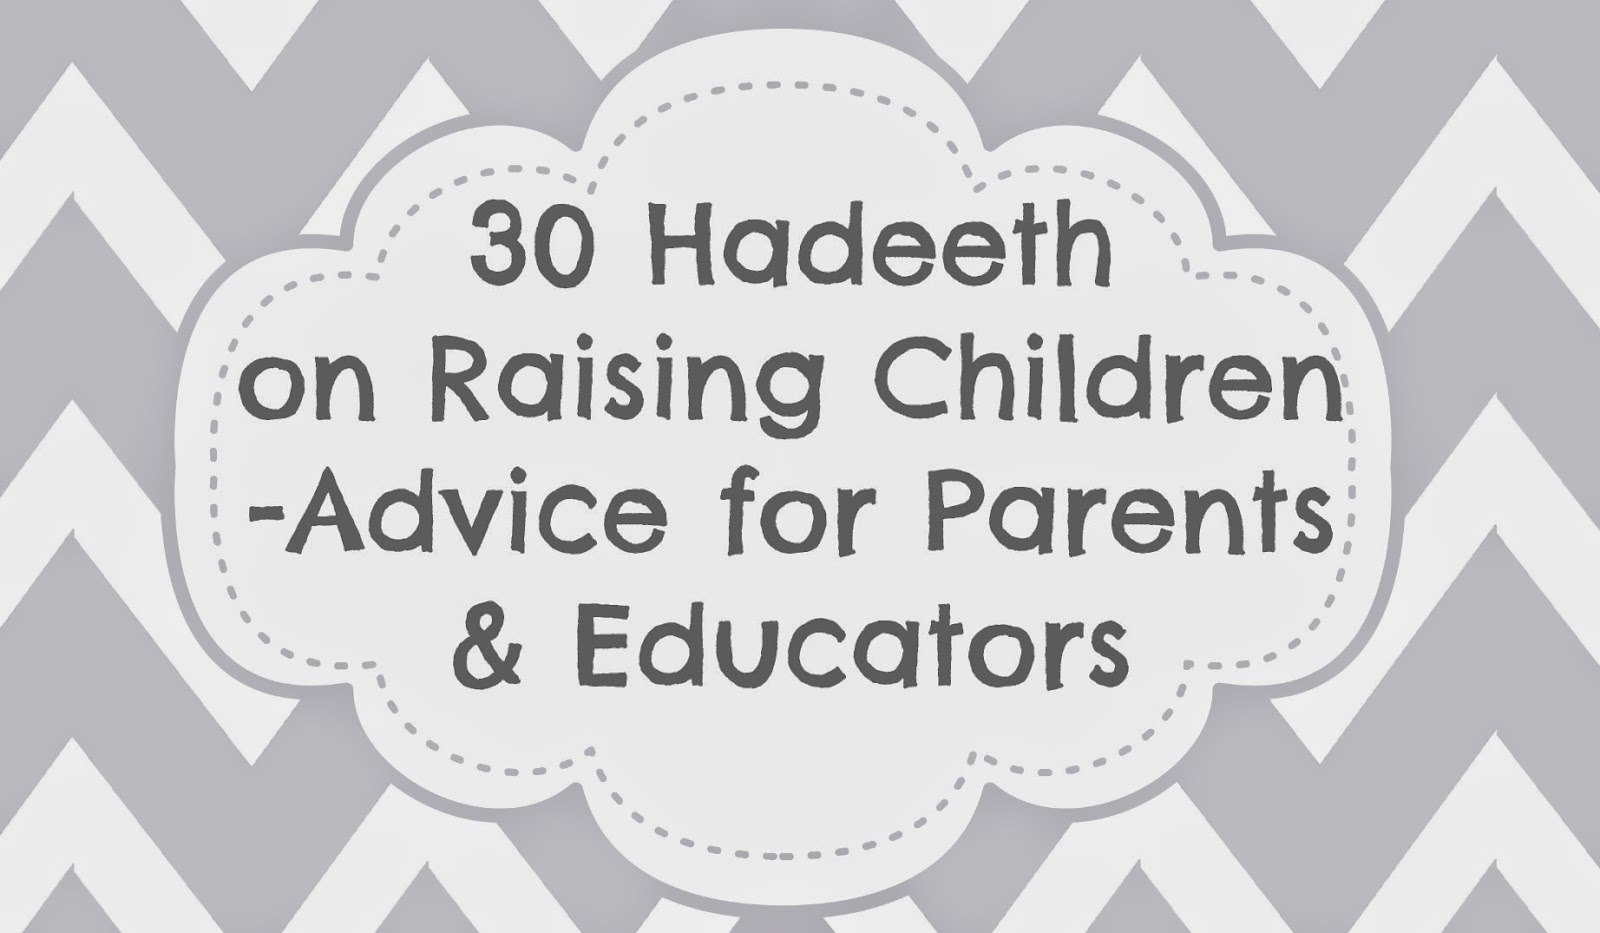 30 Hadeeth on Raising Children - Advice for Parents and Educators